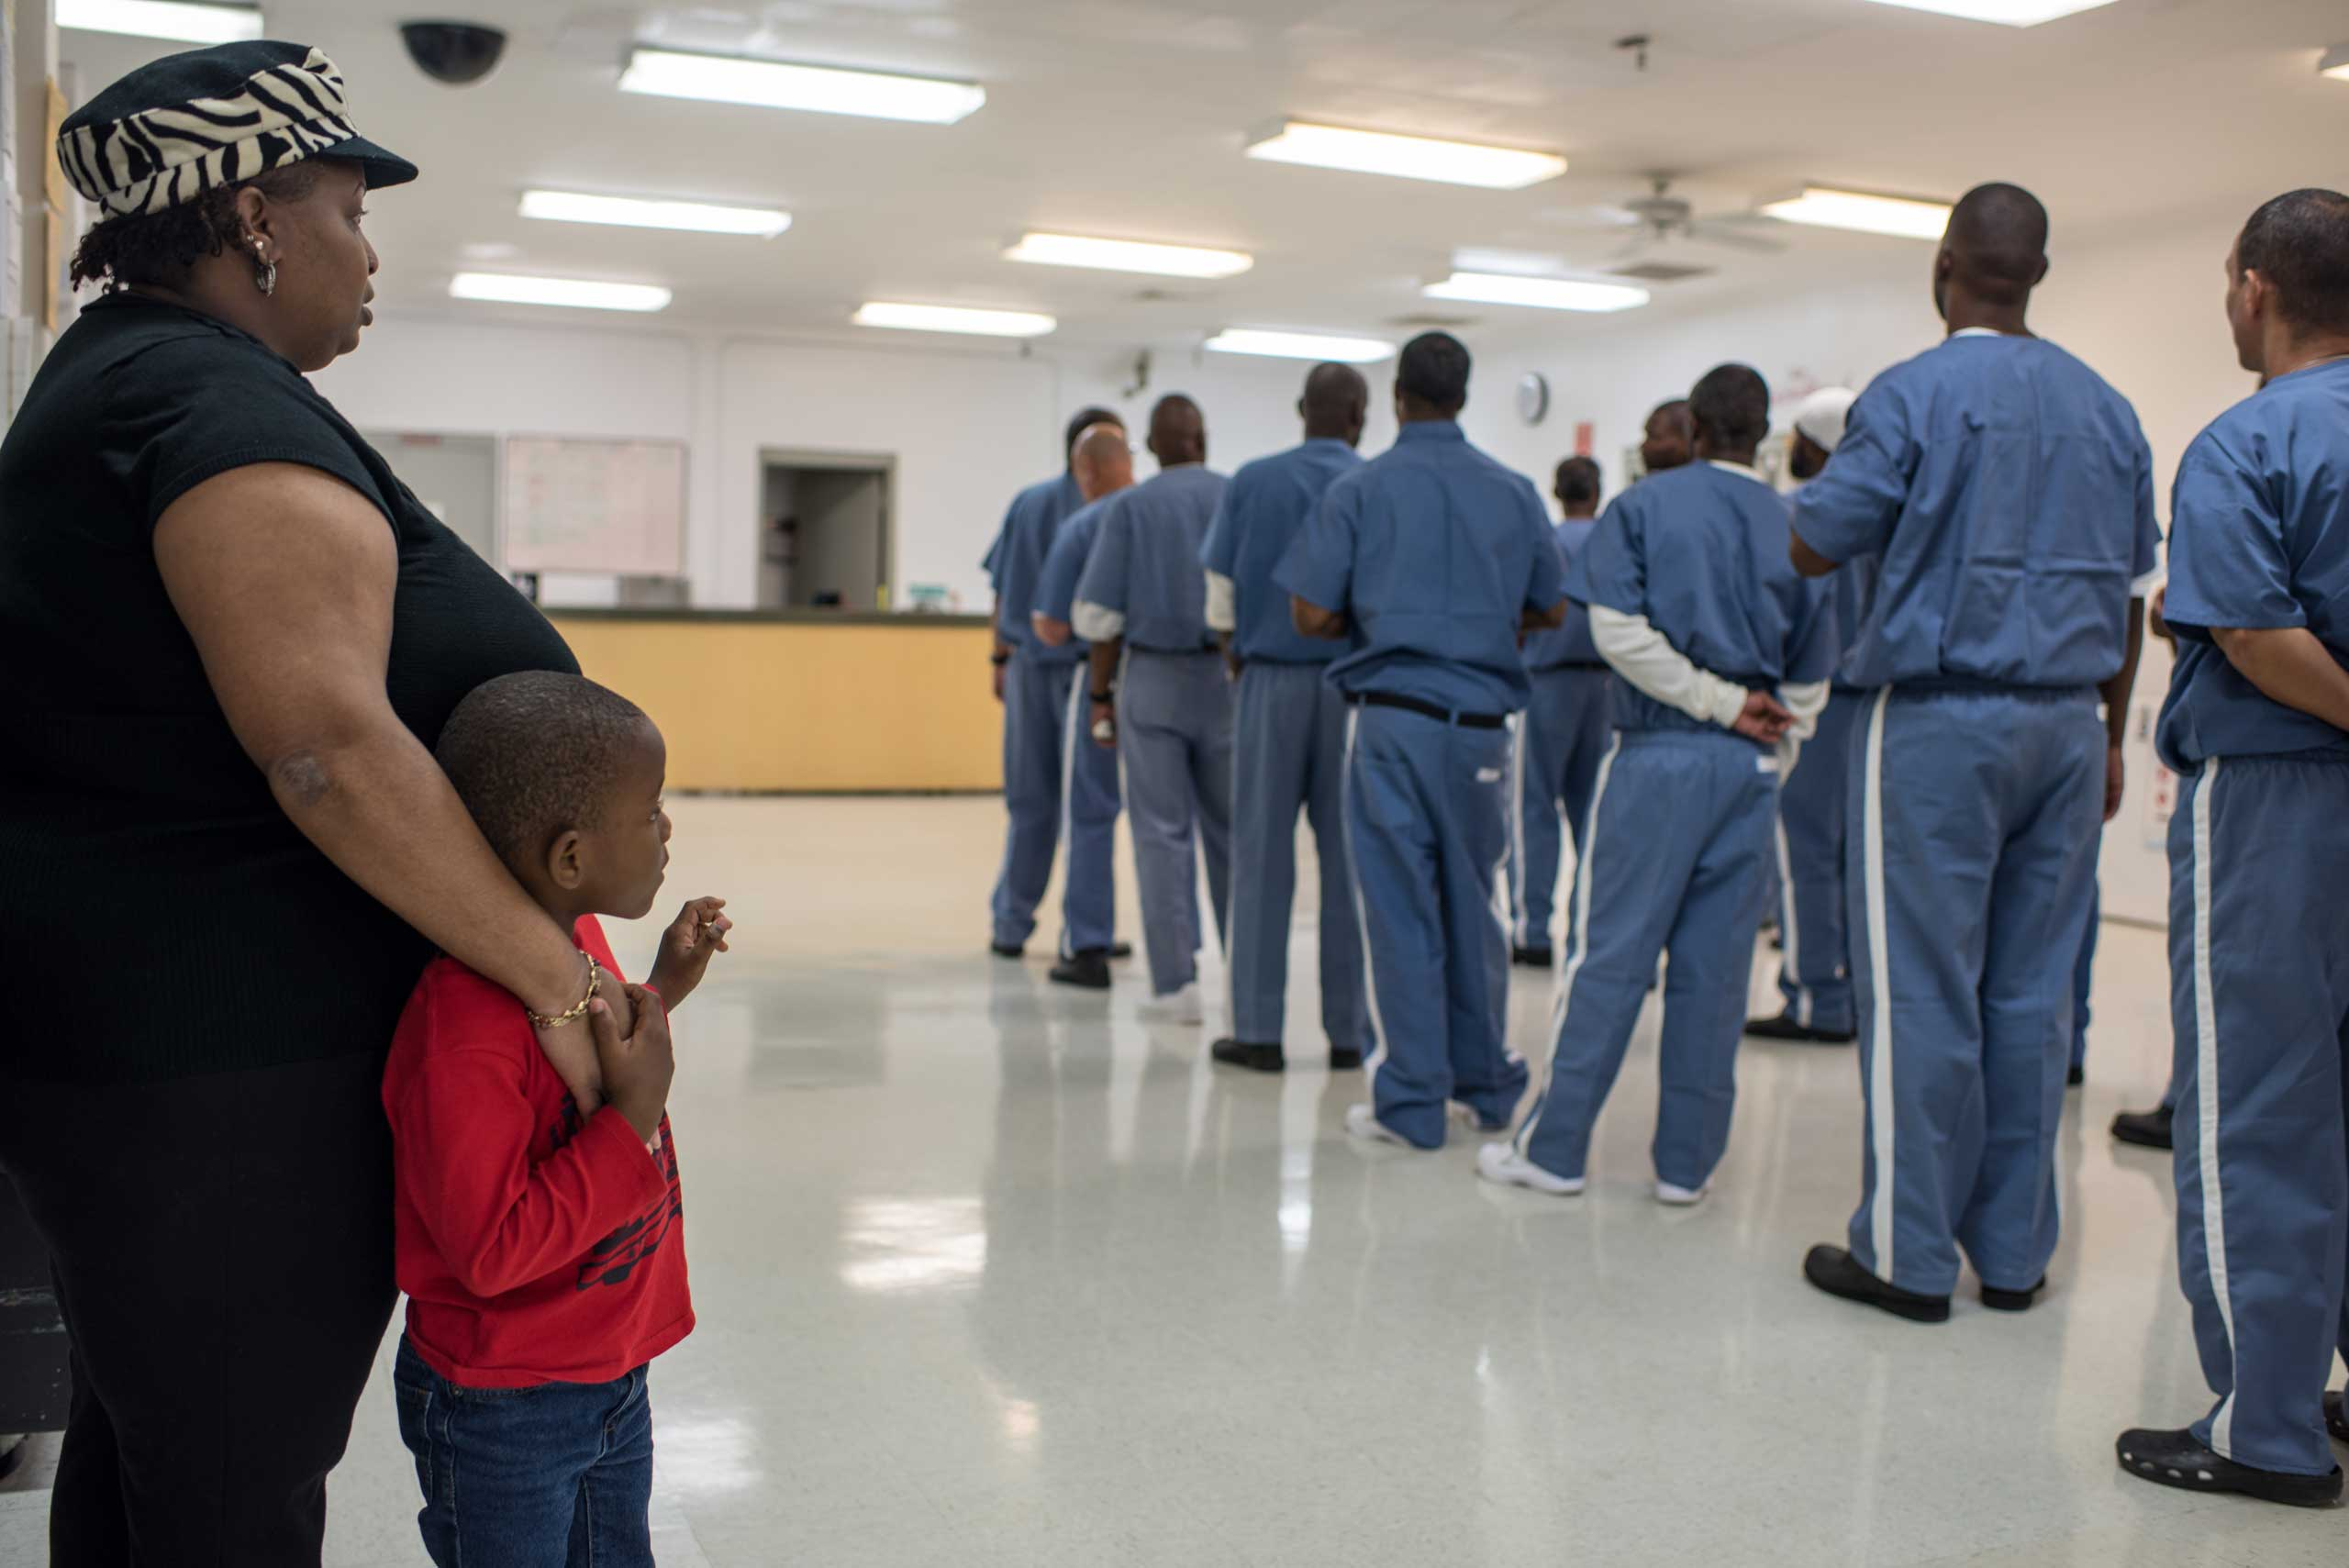 Caroline stands with her son, Braxton, 6, as inmates line up for a head count at the Everglades Correctional Institution.